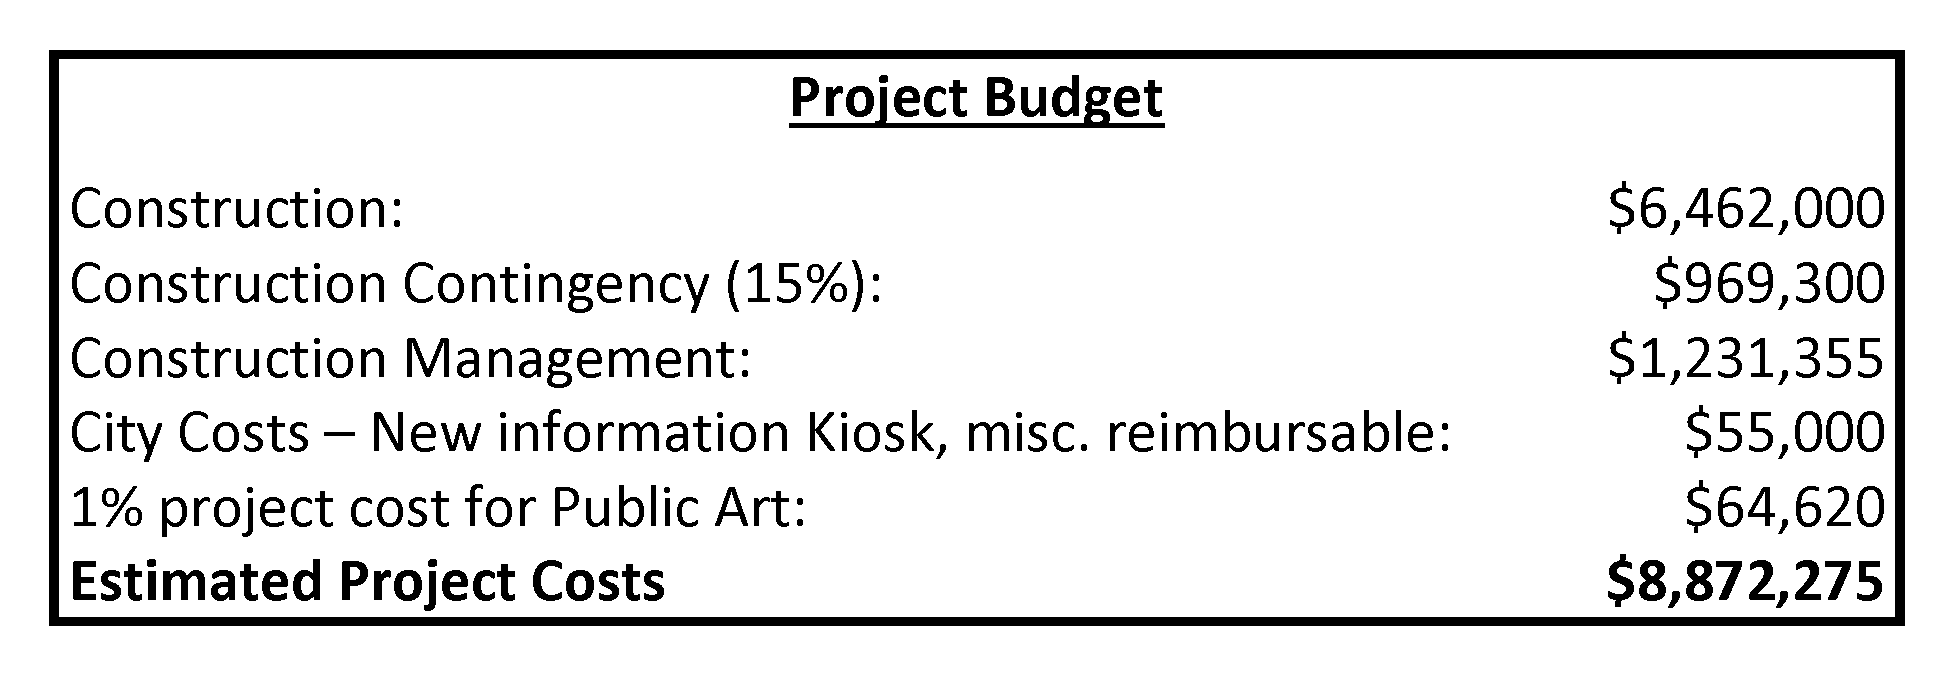 Pier Project Budget